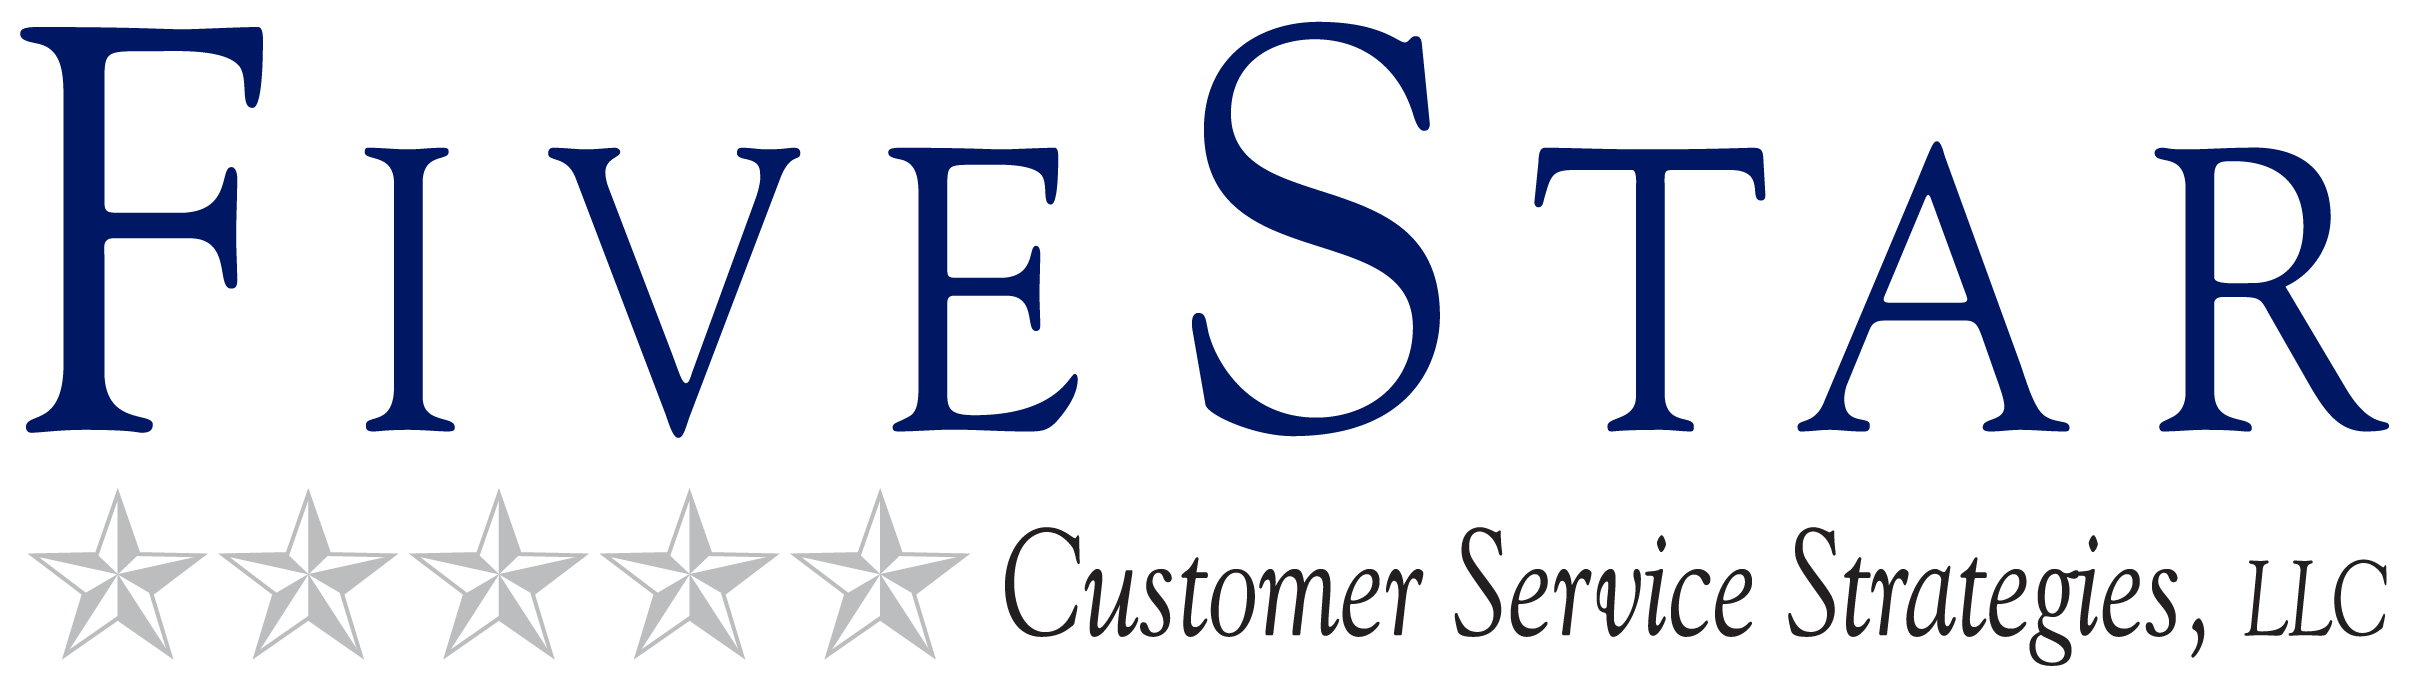 FiveStar Customer Service Strategies Logo